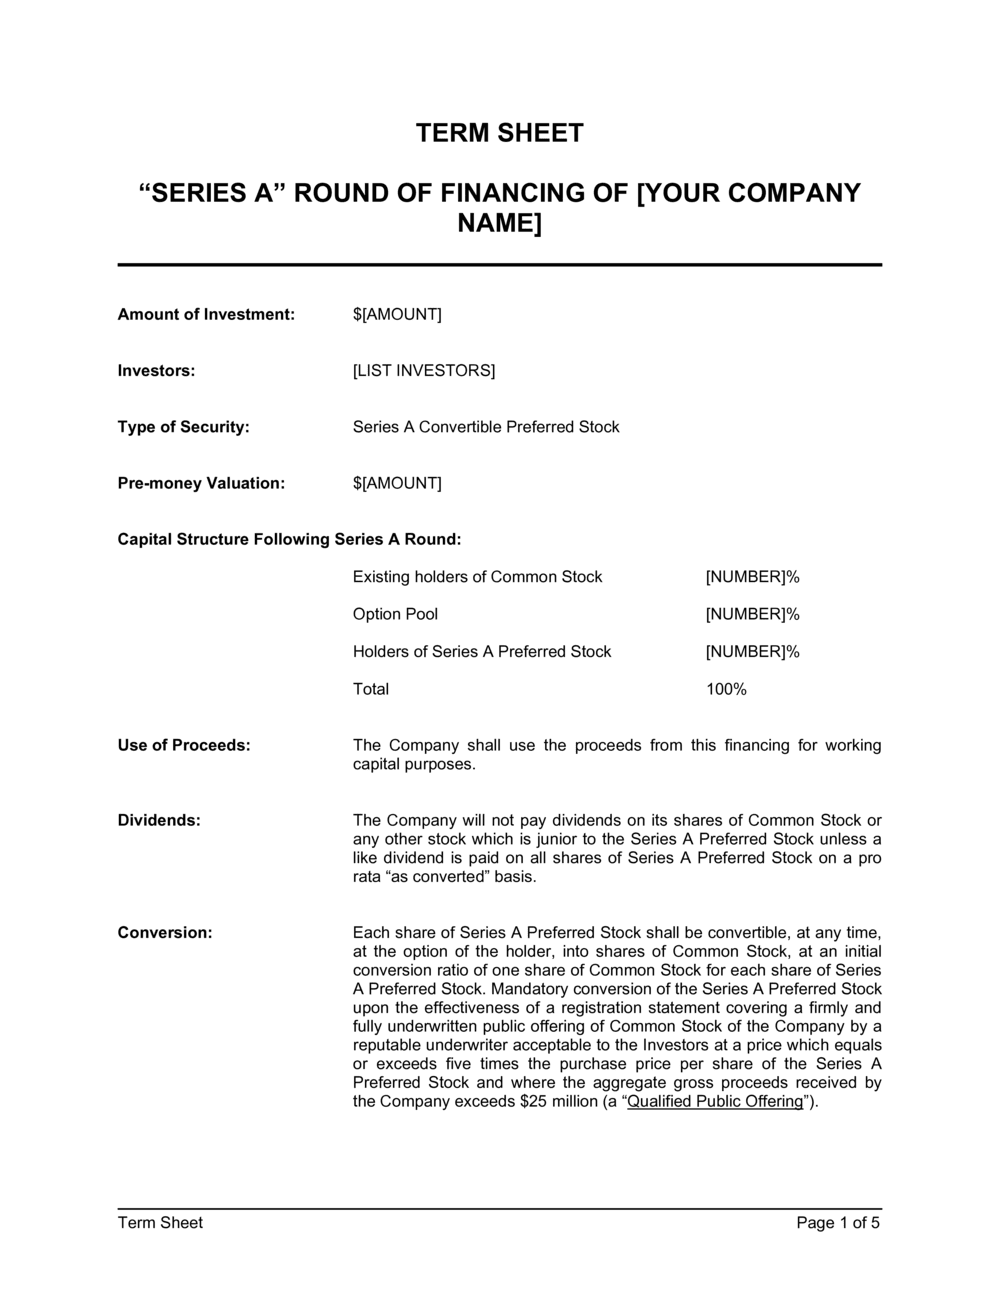 Business-in-a-Box's Term Sheet for Series A Round of Financing Template